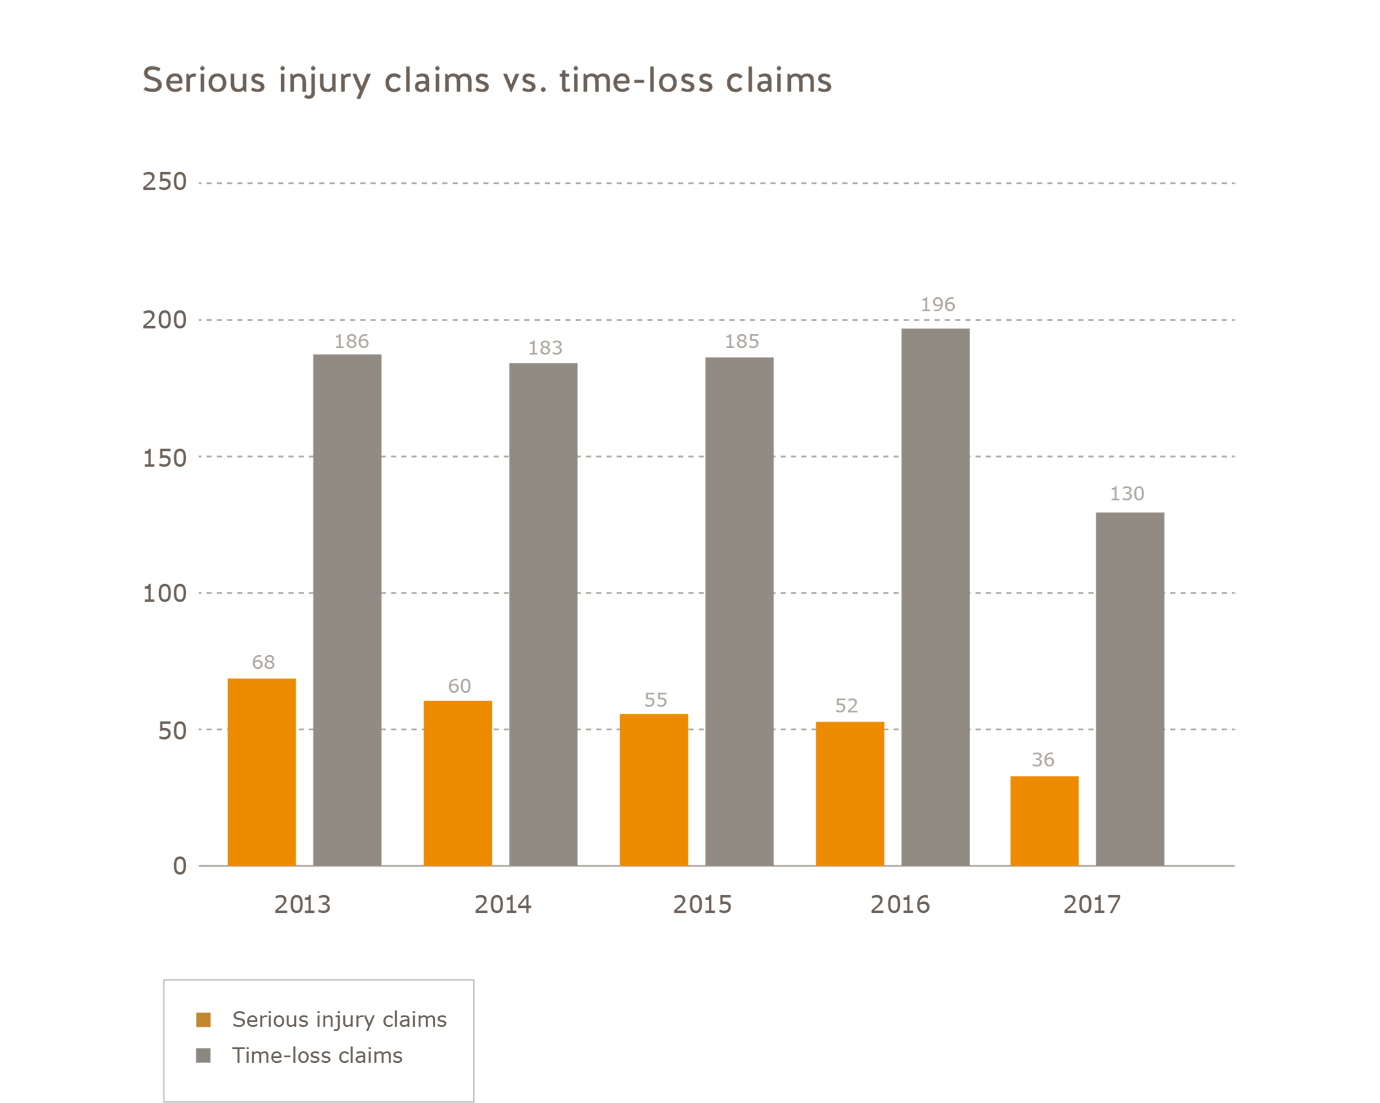 Number of serious injury claims vs. time-loss claims commercial fishing subsector 2013 to 2017. Number of serious injury claims: 2013 = 68, 2014 = 60, 2015 = 55, 2016 = 52, 2017 = 36. Number of time-loss claims: 2013 = 186, 2014 = 183, 2015 = 185, 2016 = 196, 2017 = 130.